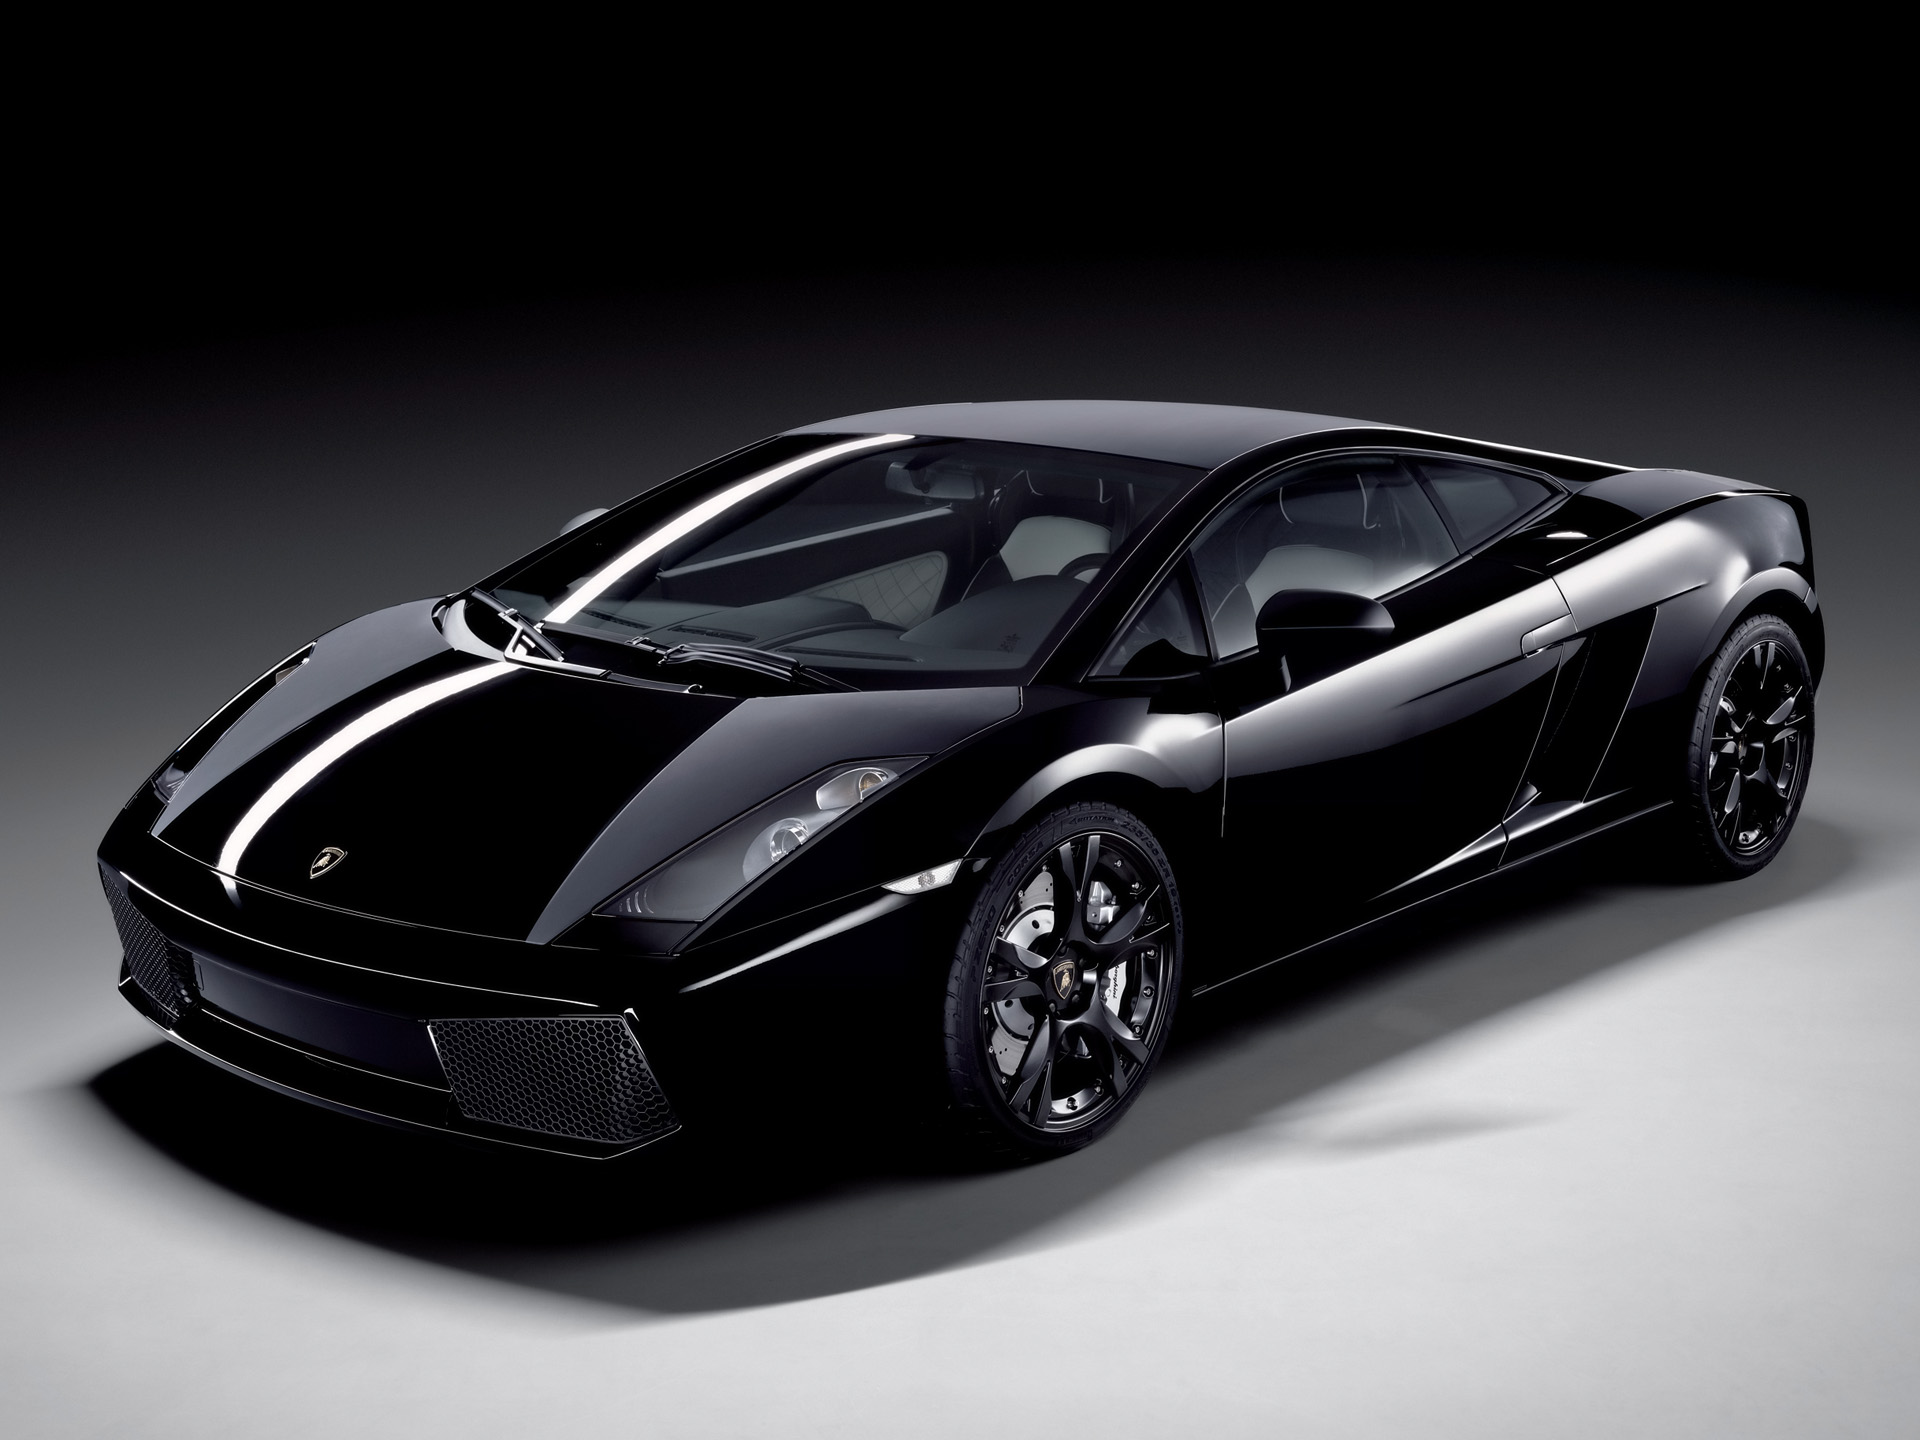 1920 Lamborghini Gallardo desktop wallpapers and stock photos